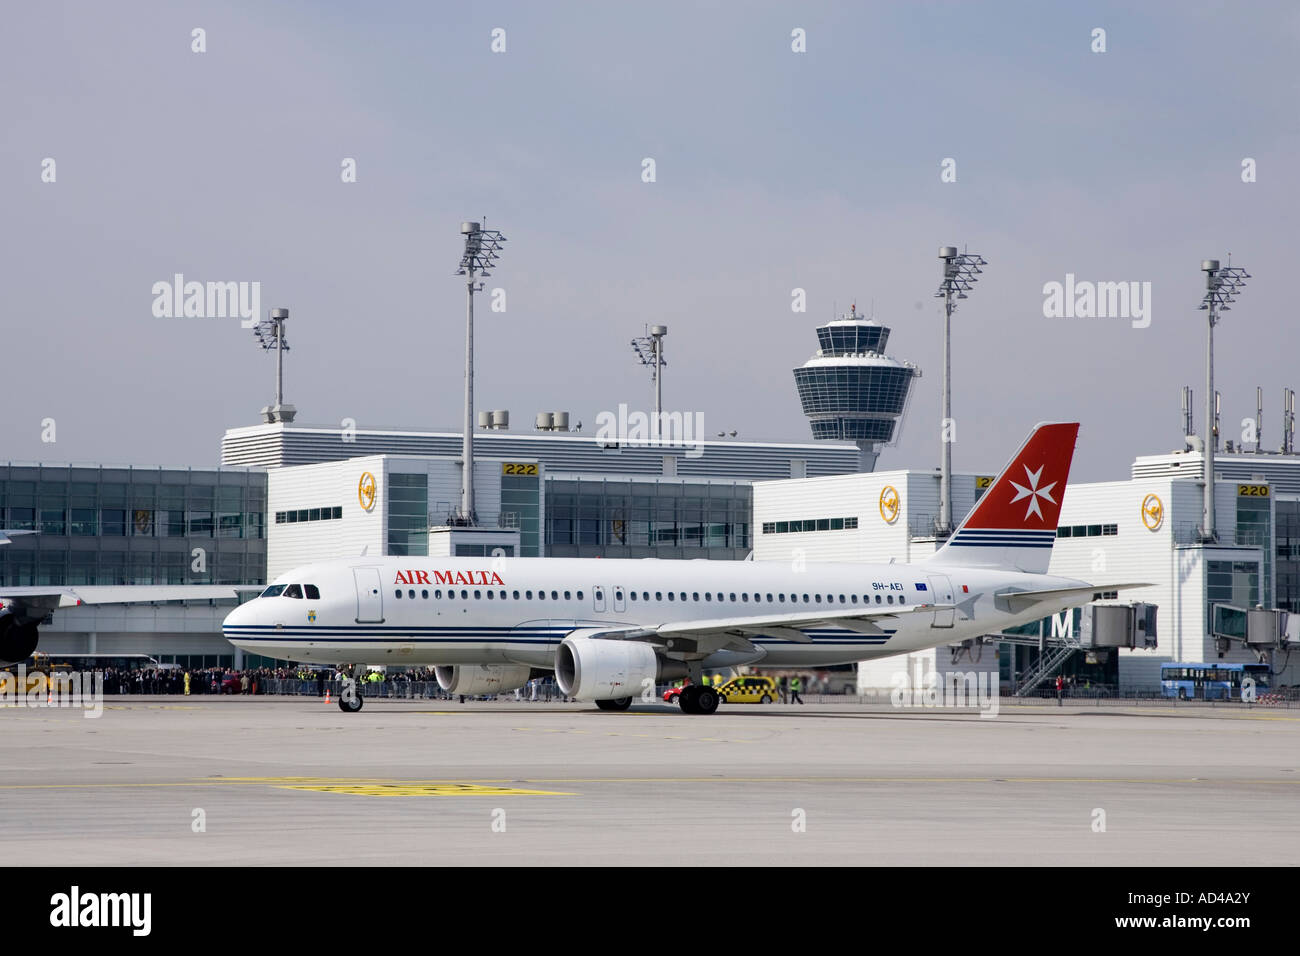 An Airbus A320 - 200 typed aircraft of Air Malta taxies at Munich Airport, Bavaria, Germany - Stock Image